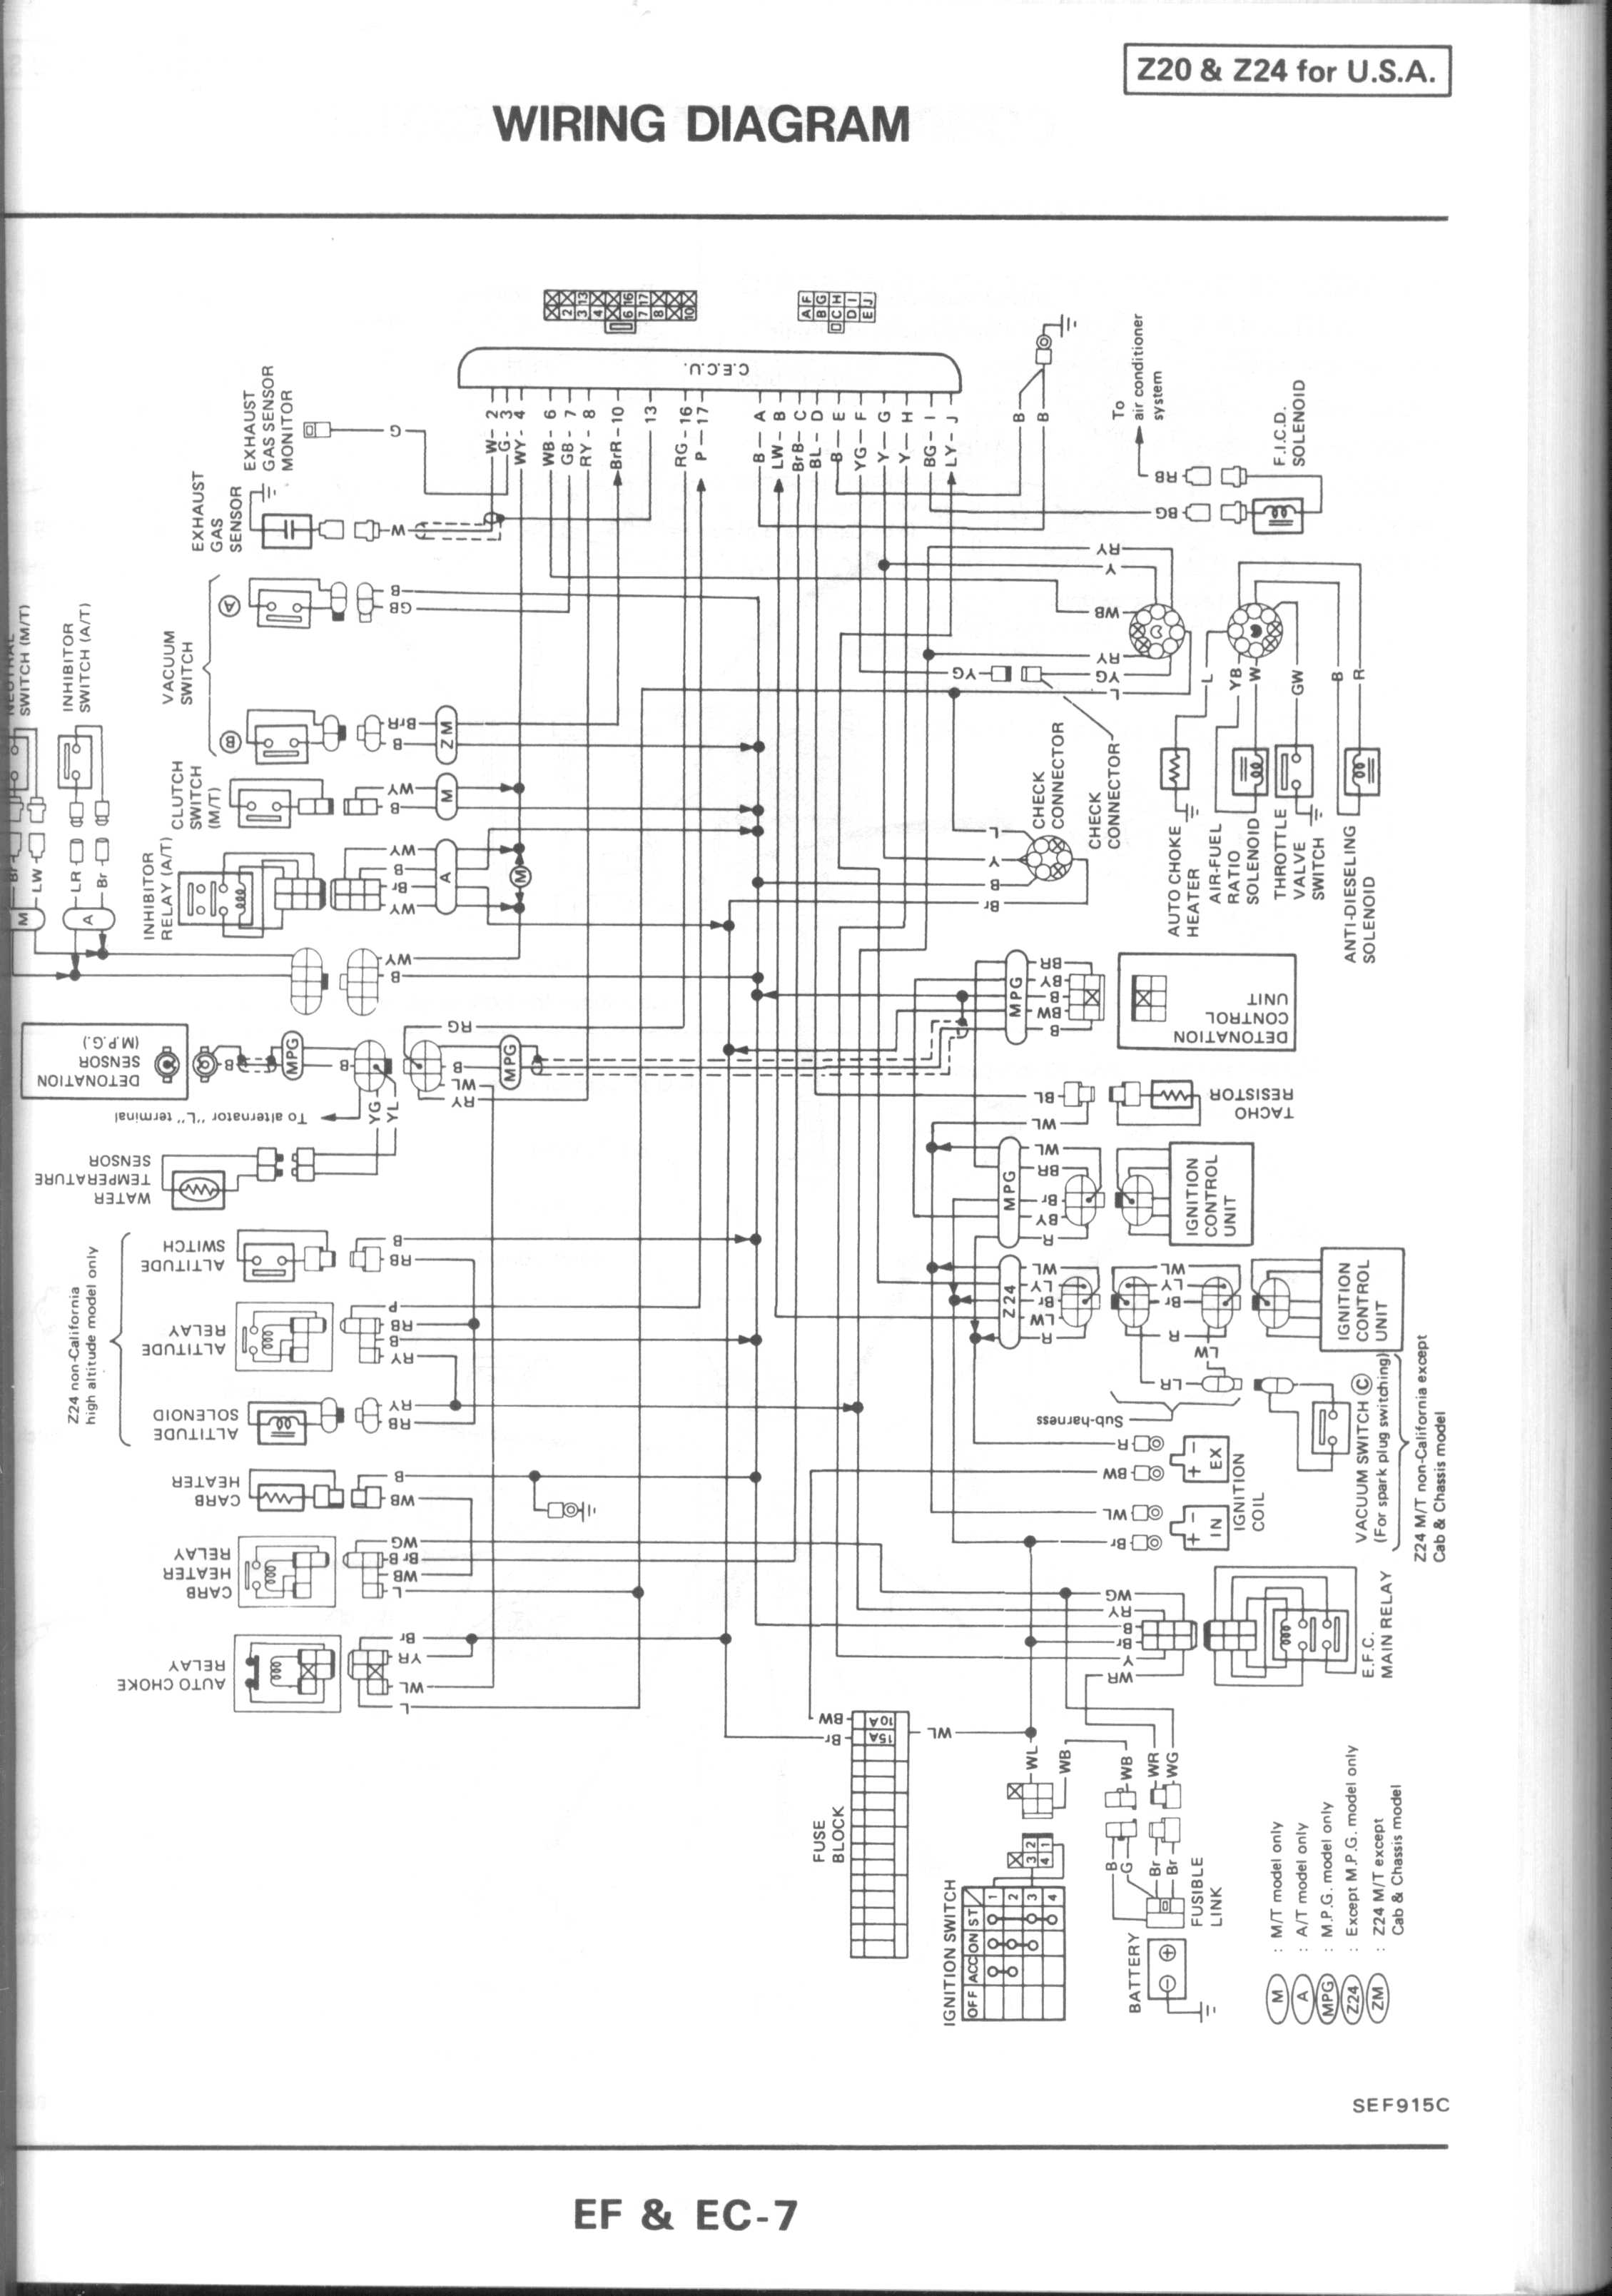 720_z24_ecu_wiring nissan nut wiring diagram for 1993 nissan d21 2.4l at eliteediting.co